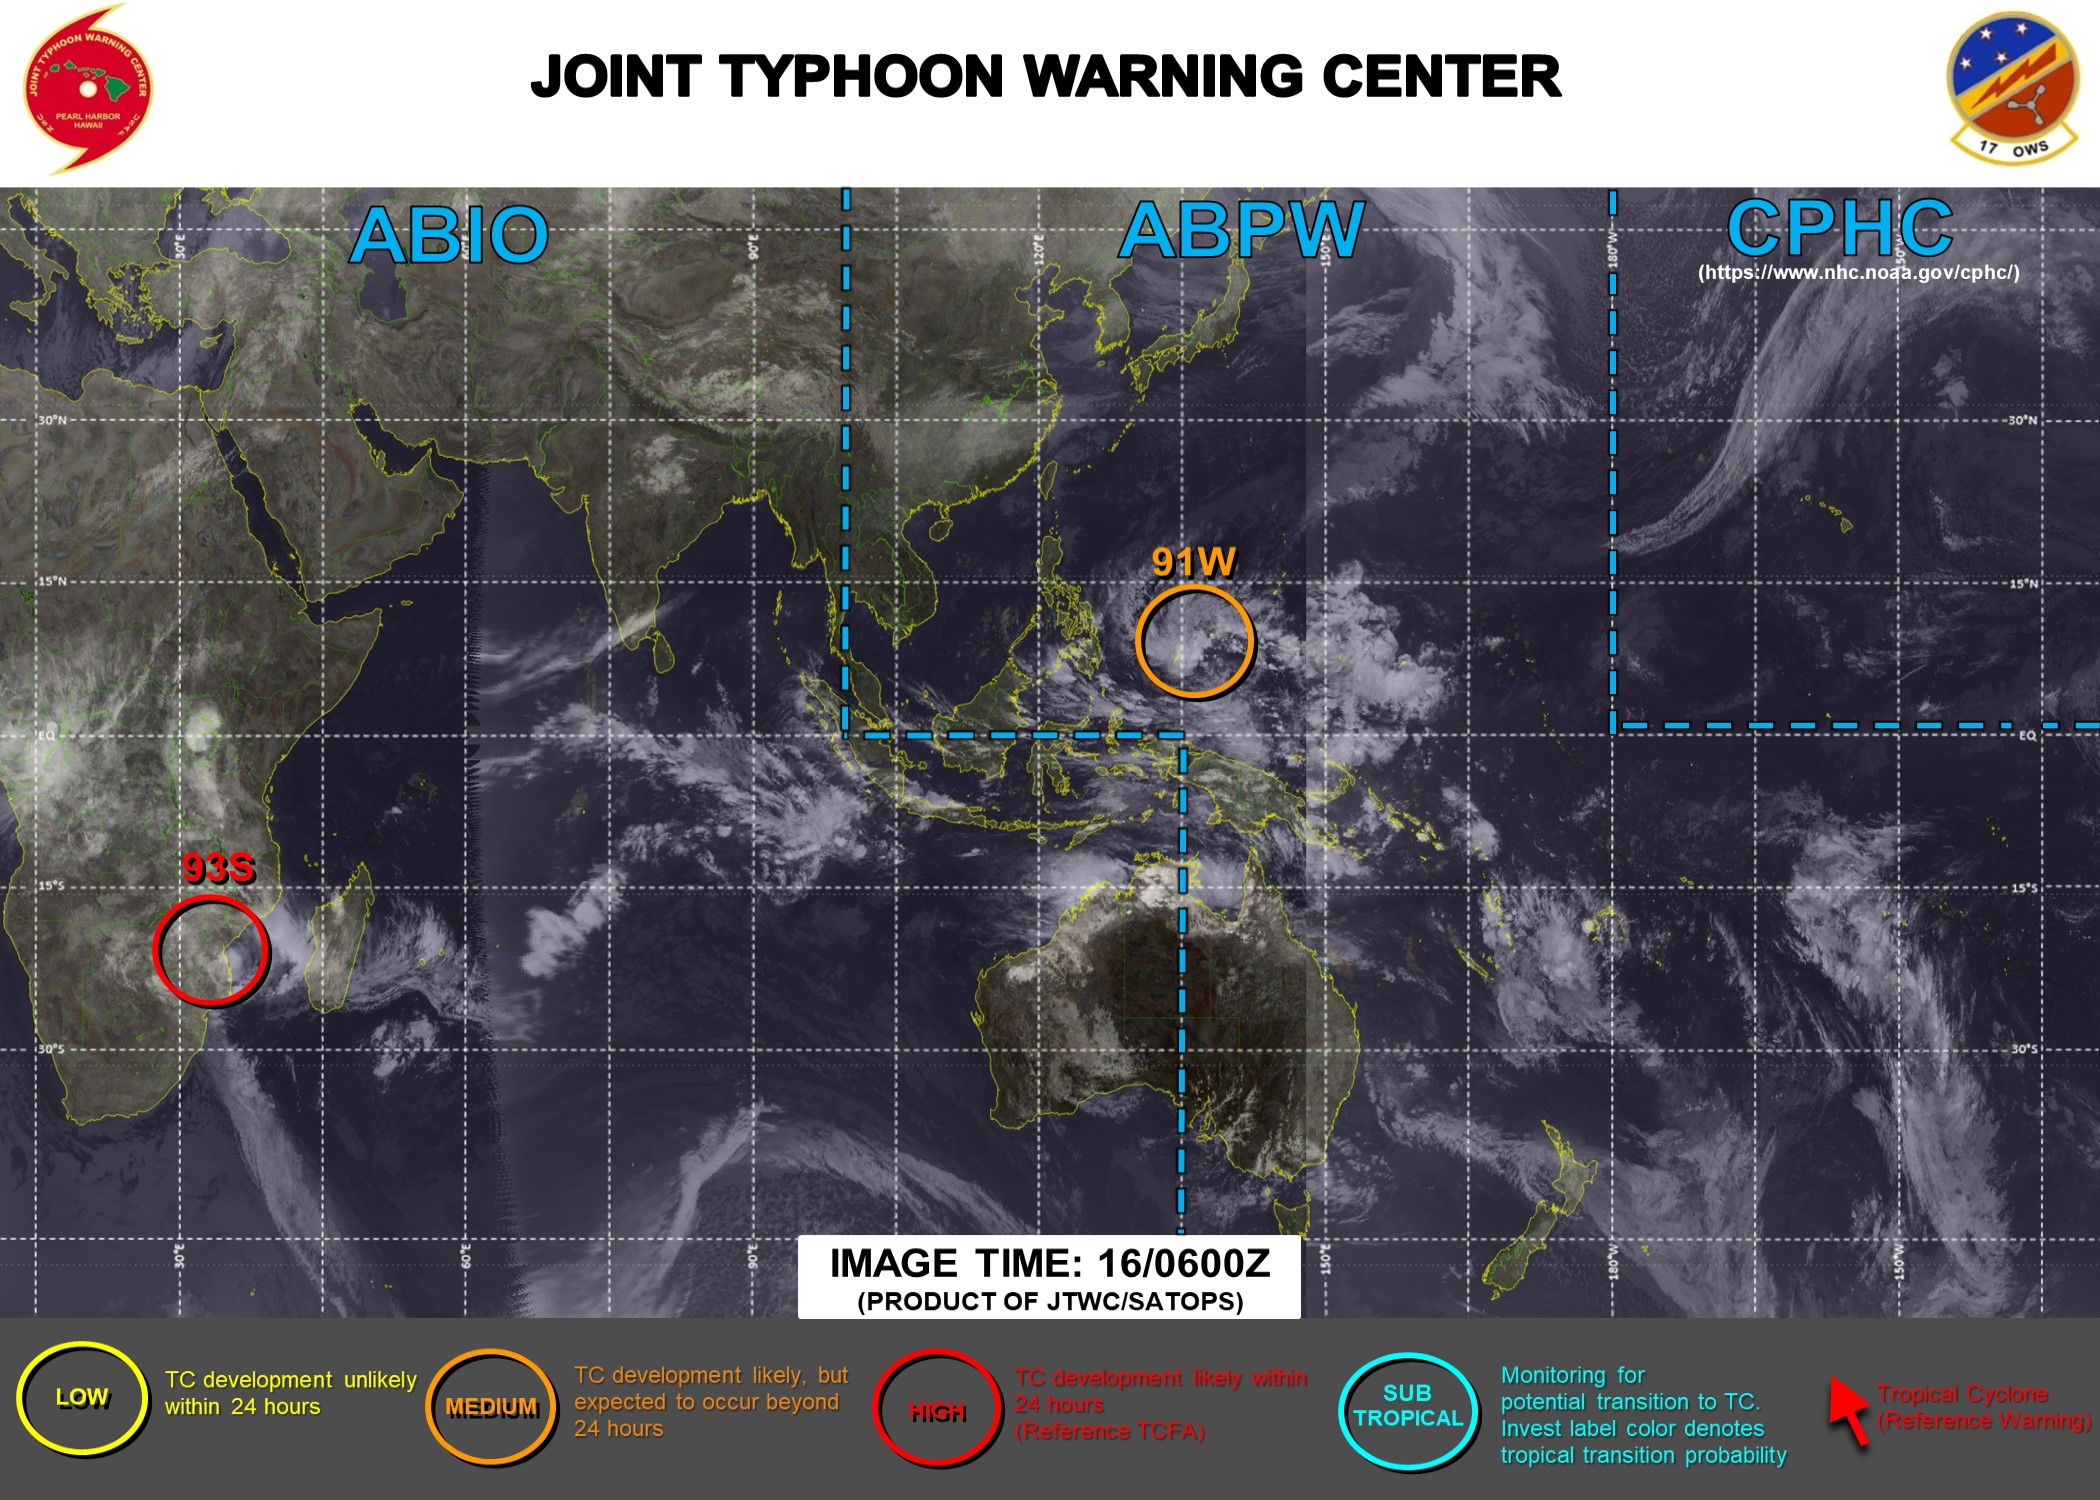 JTWC HAS UP-GRADED INVEST 93S TO HIGH. INVEST 91W IS STILL MEDIUM. 3HOURLY SATELLITE BULLETINS ARE ISSUED FOR INVEST 93S. THEY WERE DISCONTINUED FOR THE REMNANTS OF 19S(FARAJI) AT 15/2045UTC.3 HOURLY SATELLITE BULLETINS ARE NOW ISSUED FOR INVEST 91W FROM 16/1150UTC.